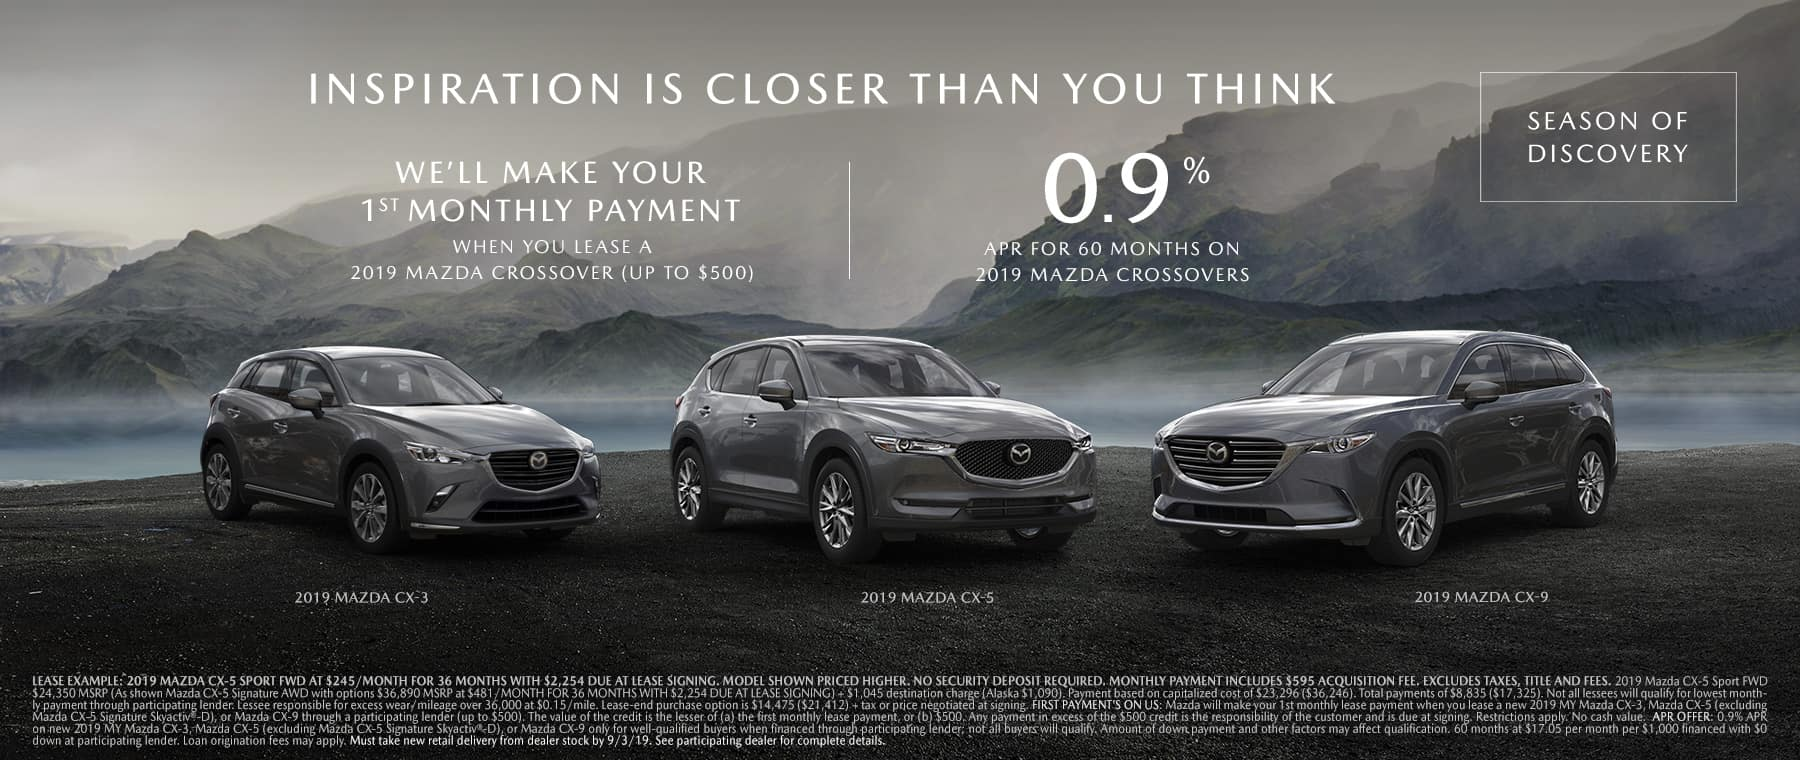 Mazda Dealership Near Me >> Power Mazda Mazda Dealer In Salem Or Near Portland